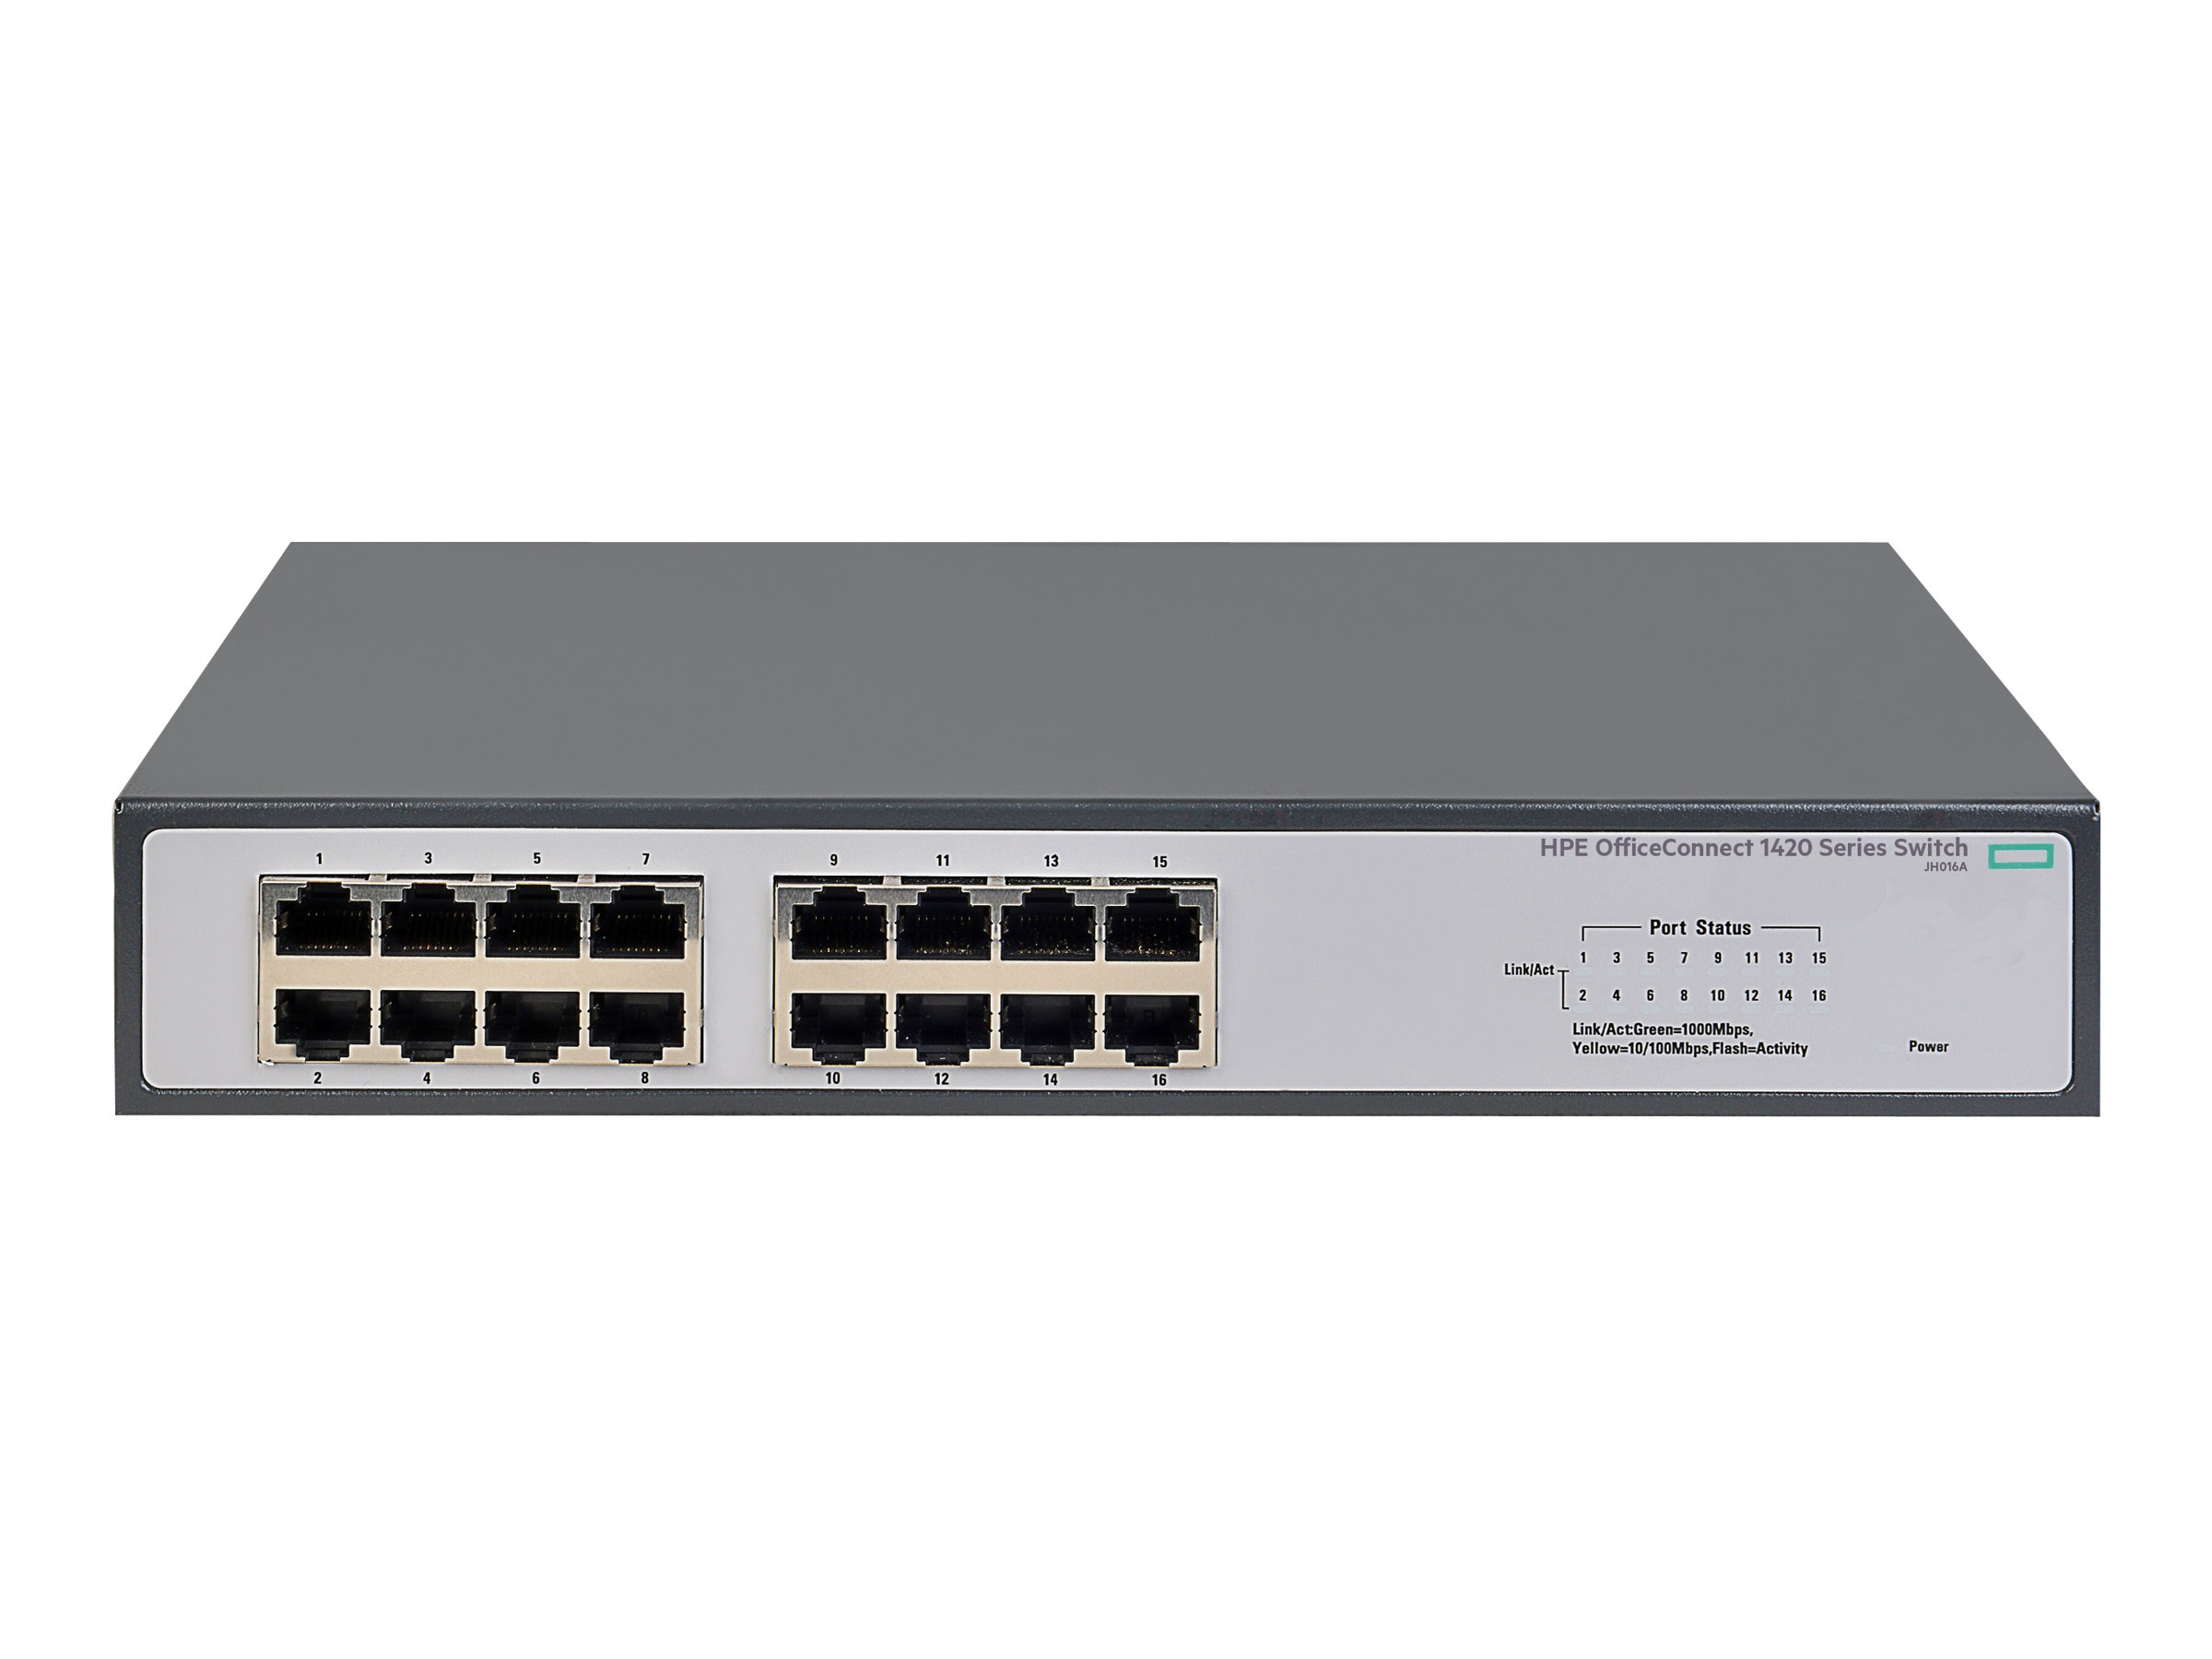 HPE 1420-16G Switch